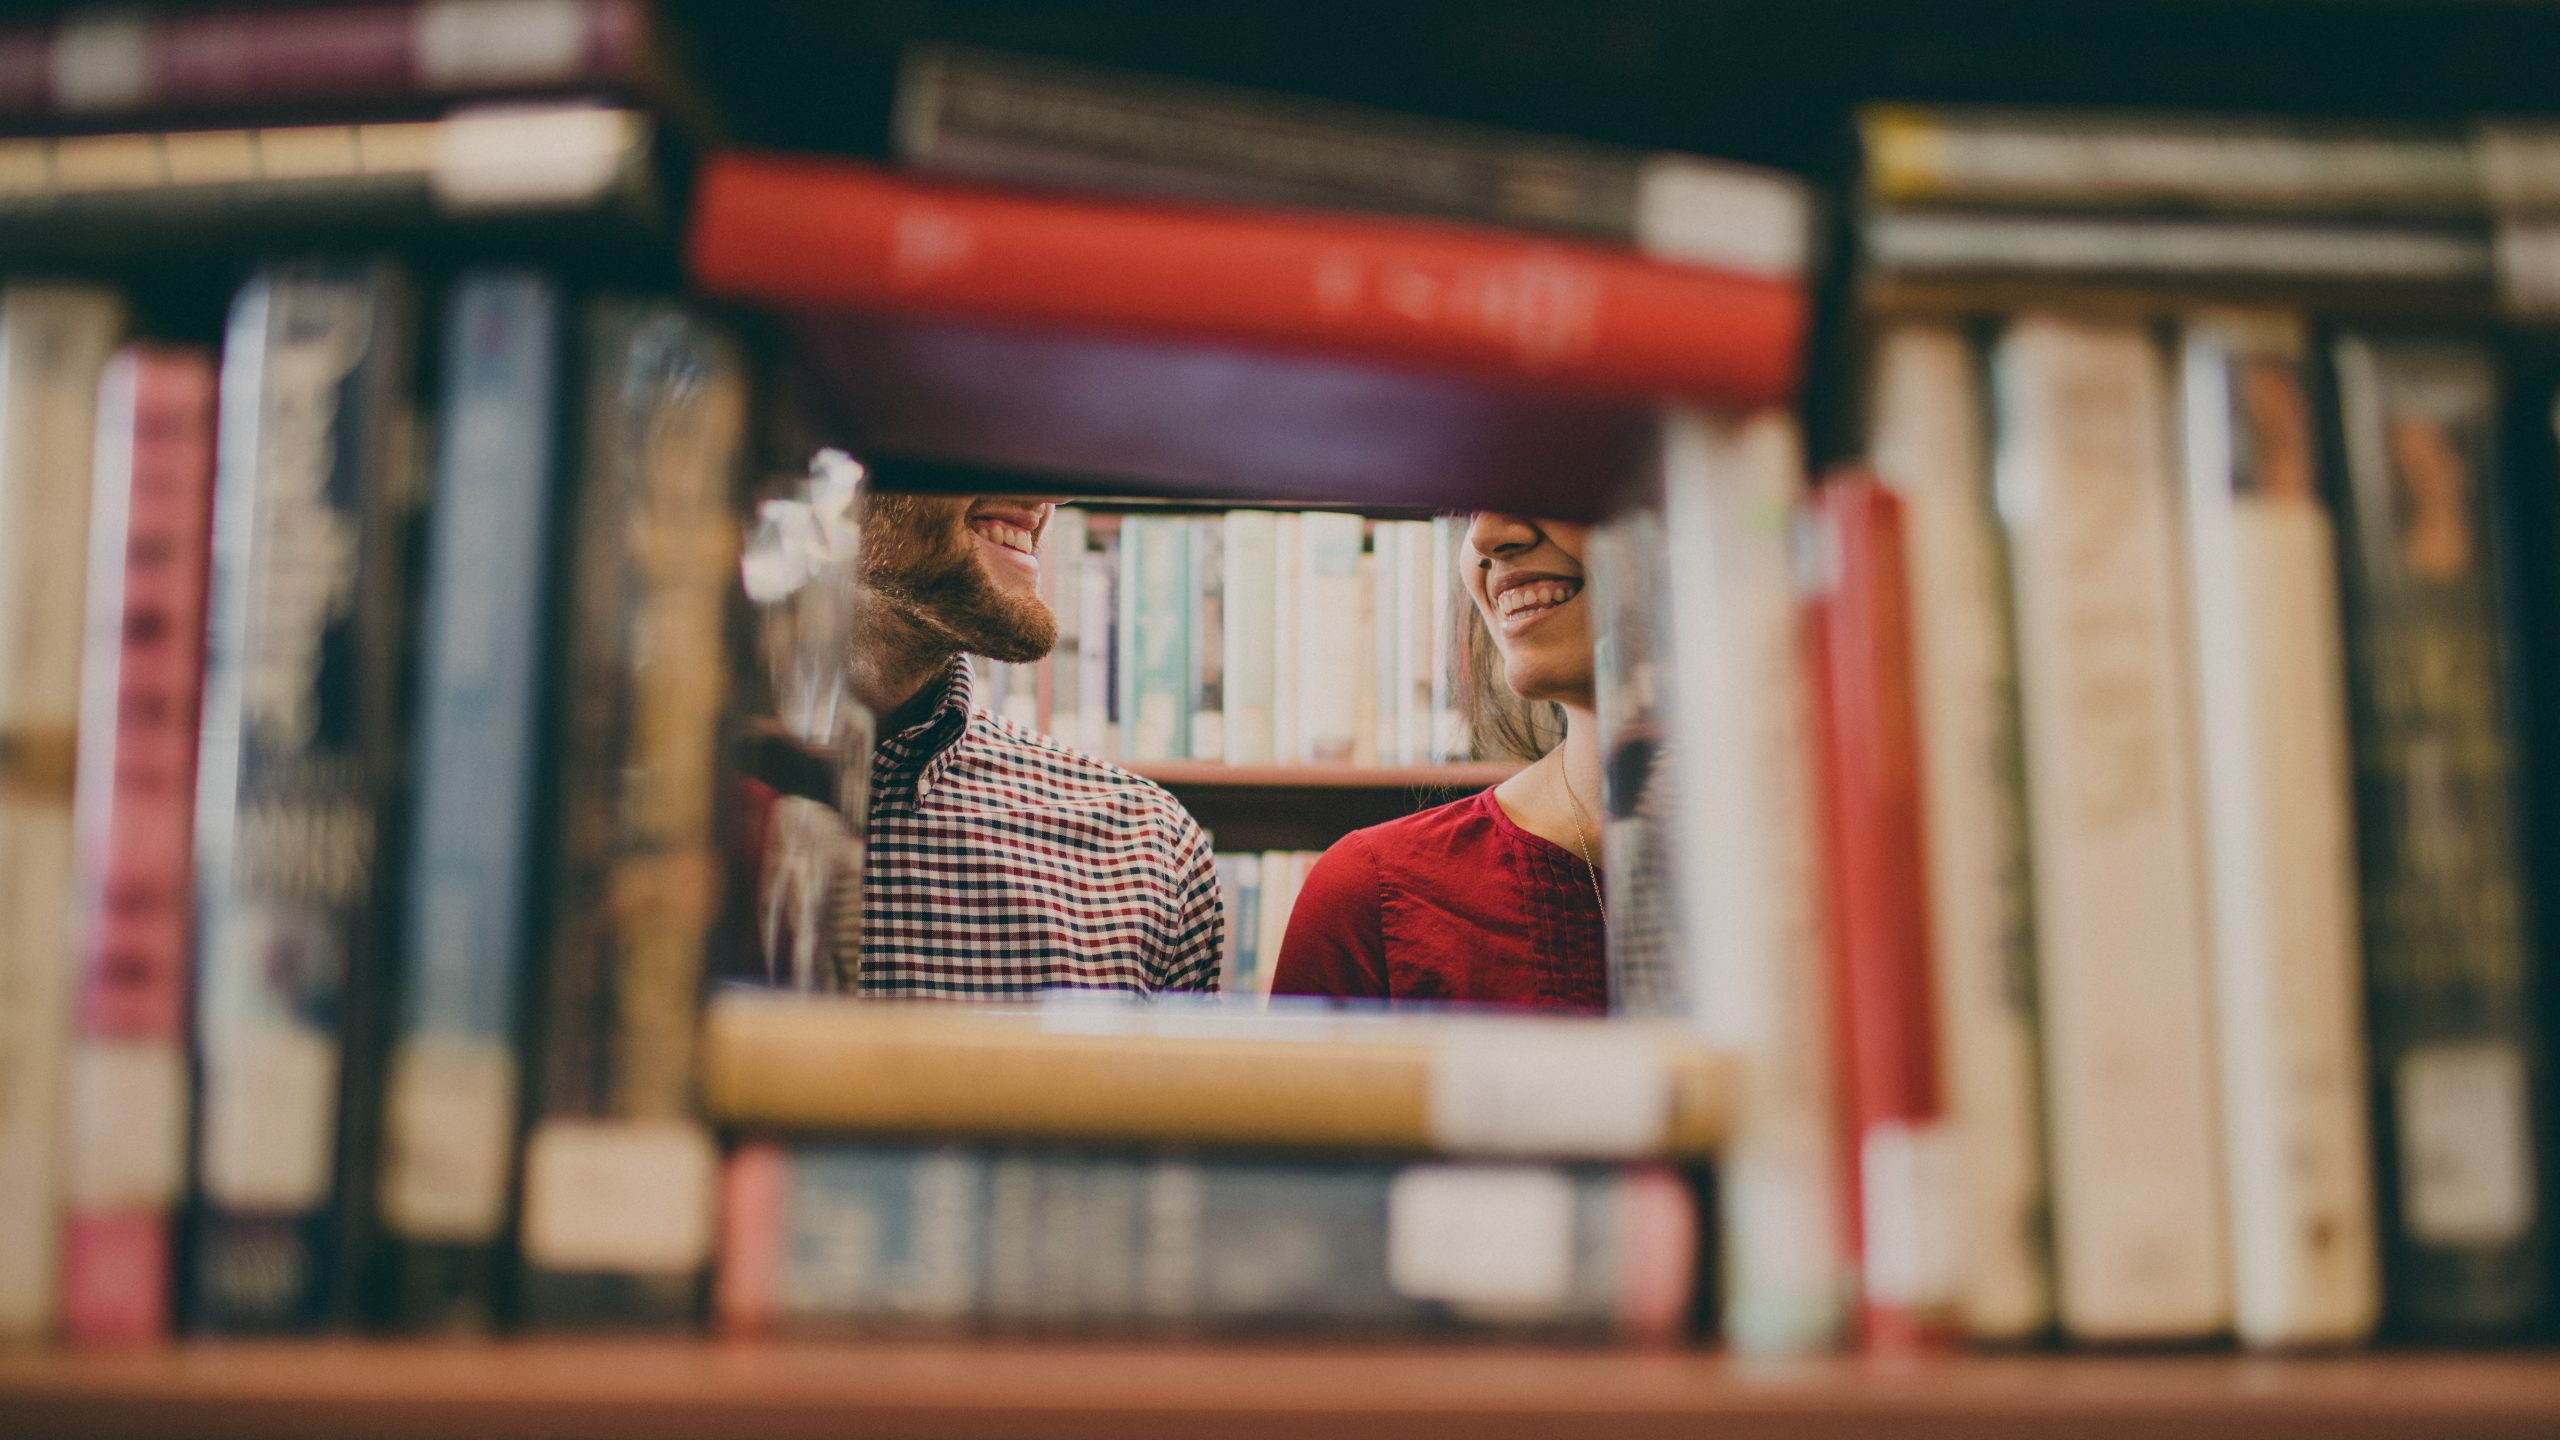 Have you heard of the book nook trend? A book nook is a cute little insert that tucks between the books on your bookshelf. It's basically a whole new (miniature!) world on your bookshelf. Pretty cool, right? We have the best ideas including a book nook under stairs!